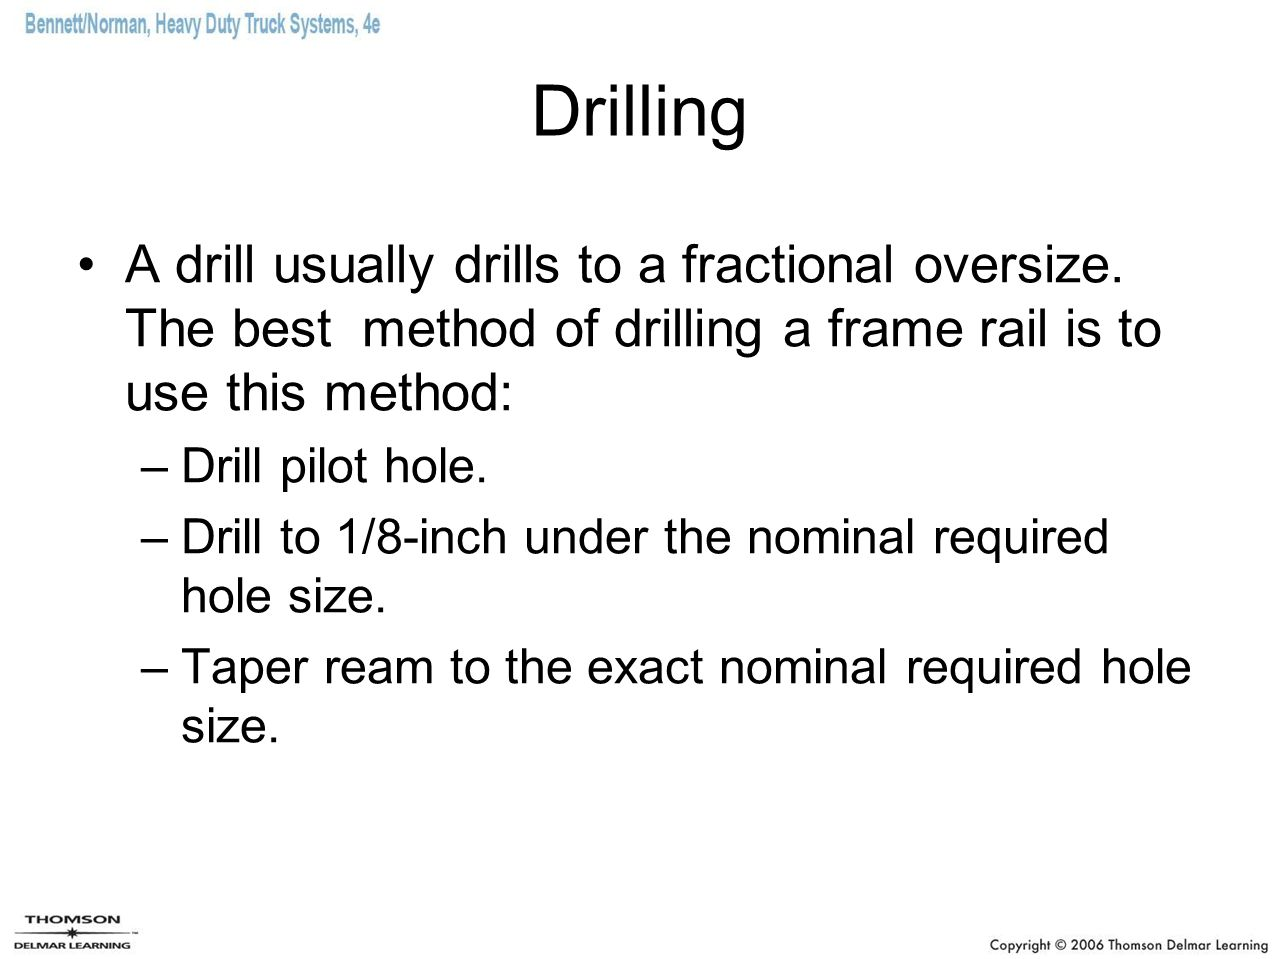 Drilling A drill usually drills to a fractional oversize. The best method of drilling a frame rail is to use this method: